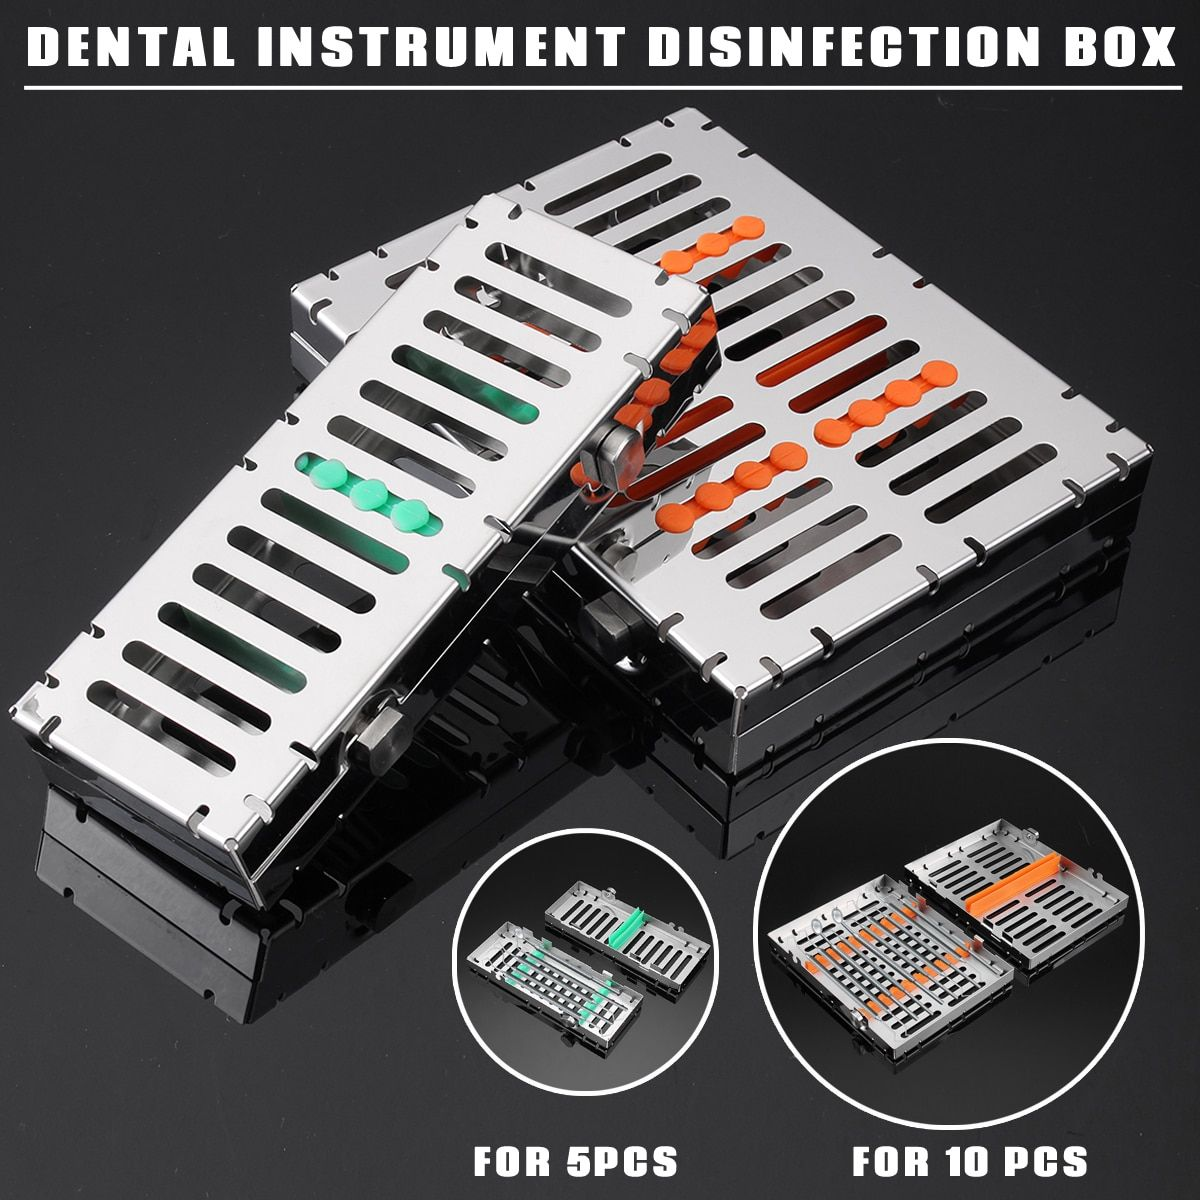 Dental Sterilisation Autoklaven Kassette Tablett Box Rack Gummi Linker Instrument Klinik Desinfektion Halter Für 5/10 Pcs Chirurgische